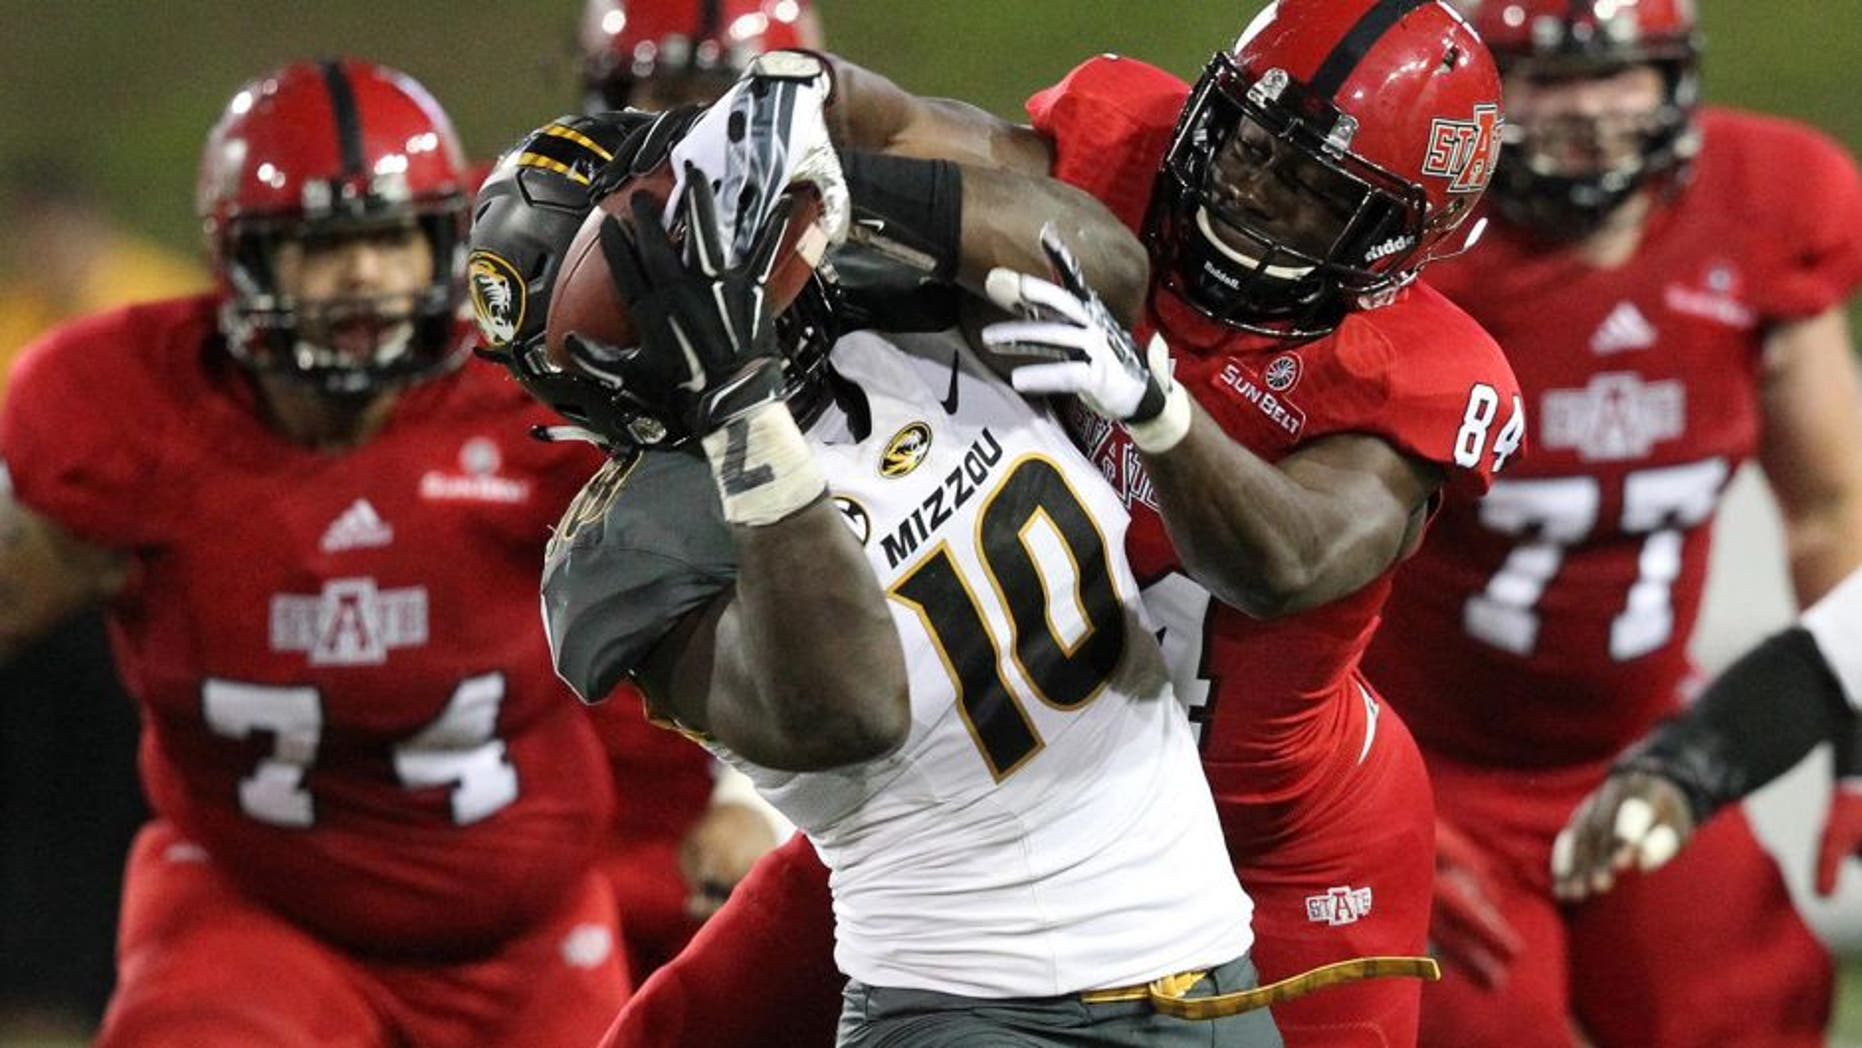 Sep 12, 2015; Jonesboro, AR, USA; Arkansas State Red Wolves wide receiver Dijon Pachal (84) fights for the ball as Missouri Tigers linebacker Kentrell Brothers (10) strips it for an interception in the fourth quarter at ASU Stadium. Missouri defeated Arkansas State 27-20. Mandatory Credit: Nelson Chenault-USA TODAY Sports